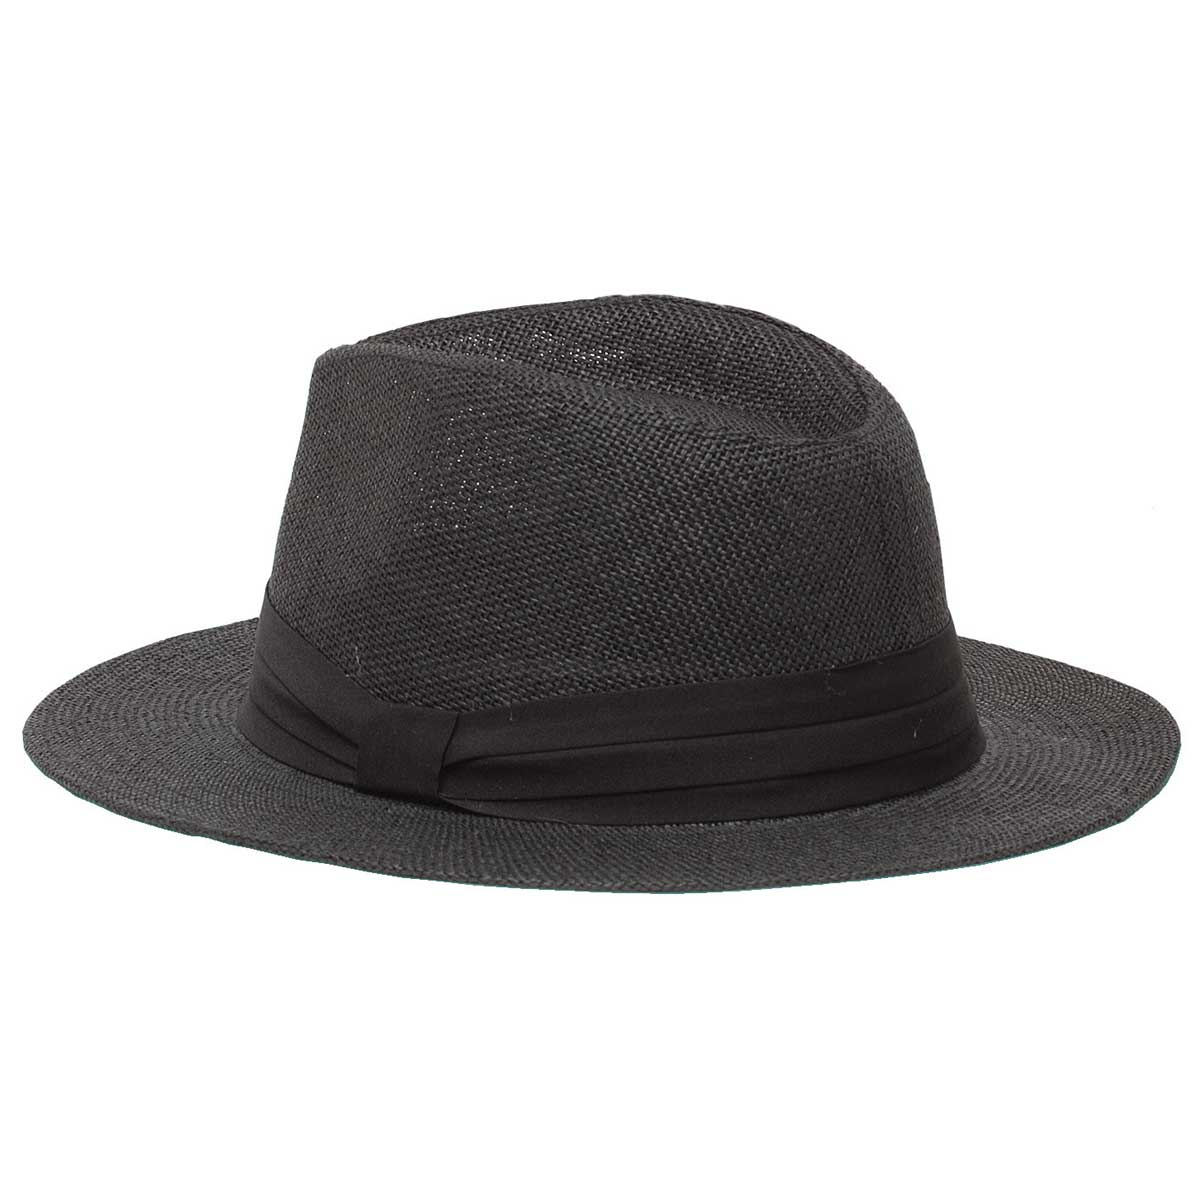 Black Panama Hat *30sp